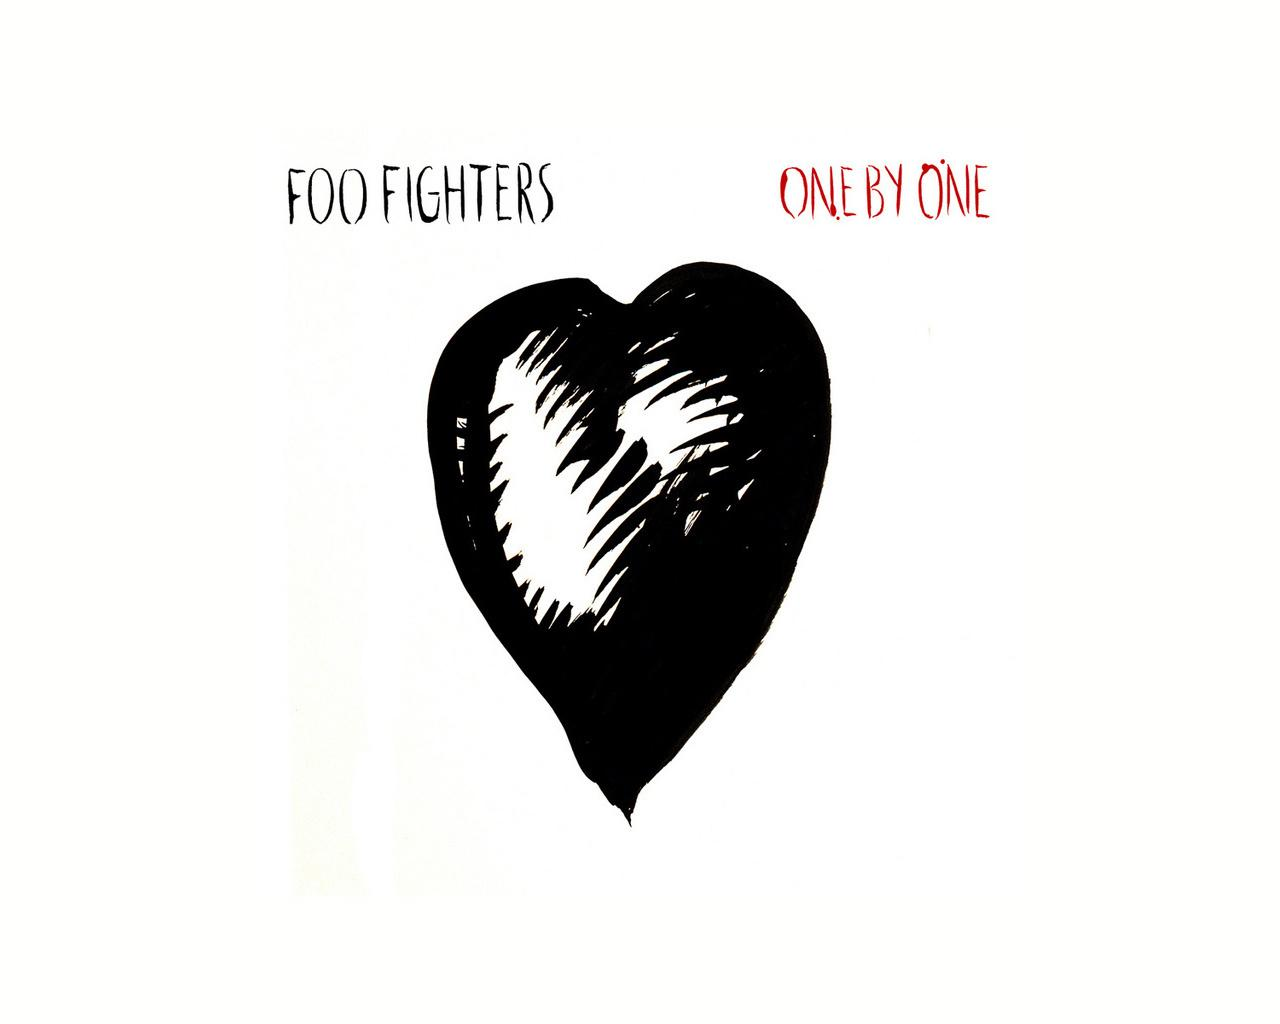 Обои Foo Fighters 1280x1024